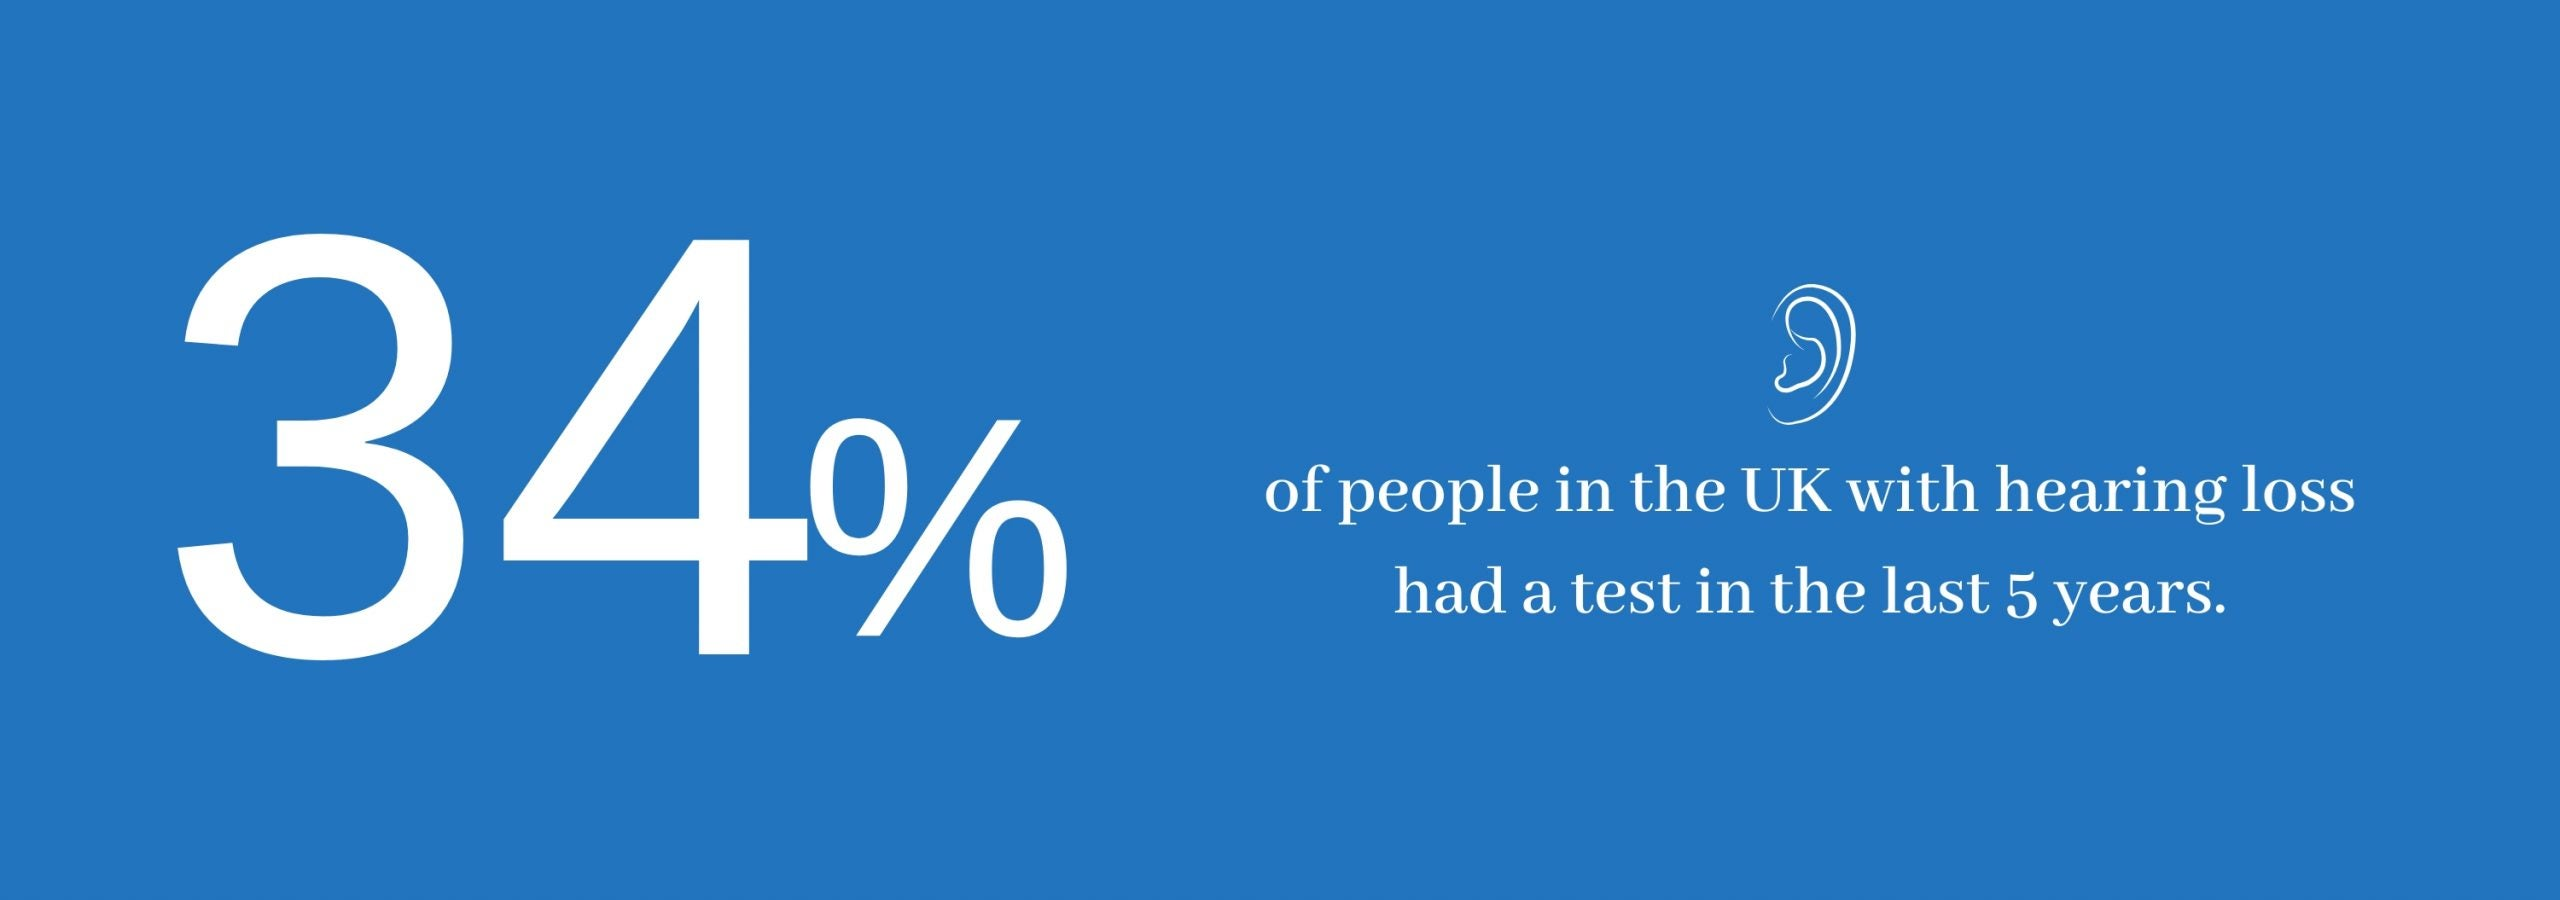 34% of people in the UK with hearing loss